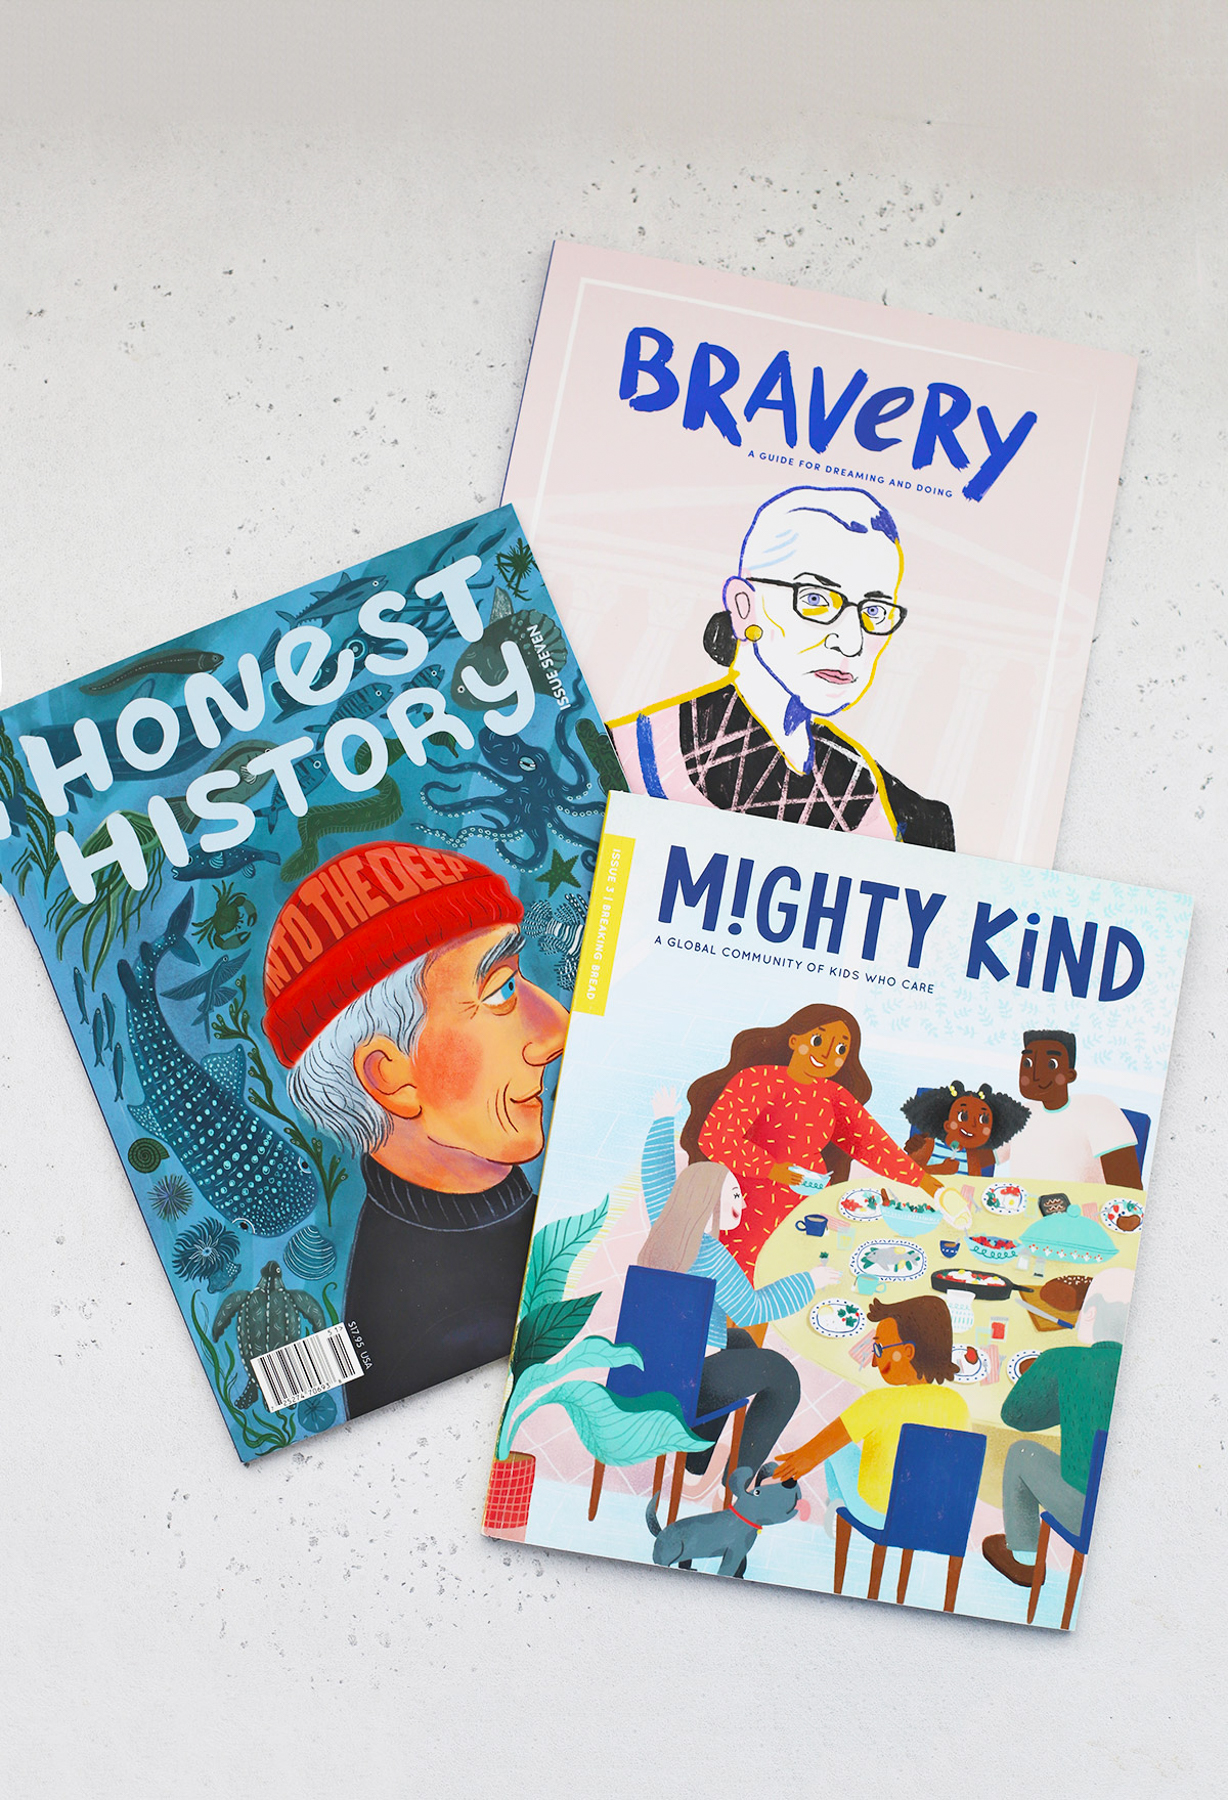 3 Kids Magazines on a White Background. Bravery Magazine, Honest History, and Mighty Kind Magazines.